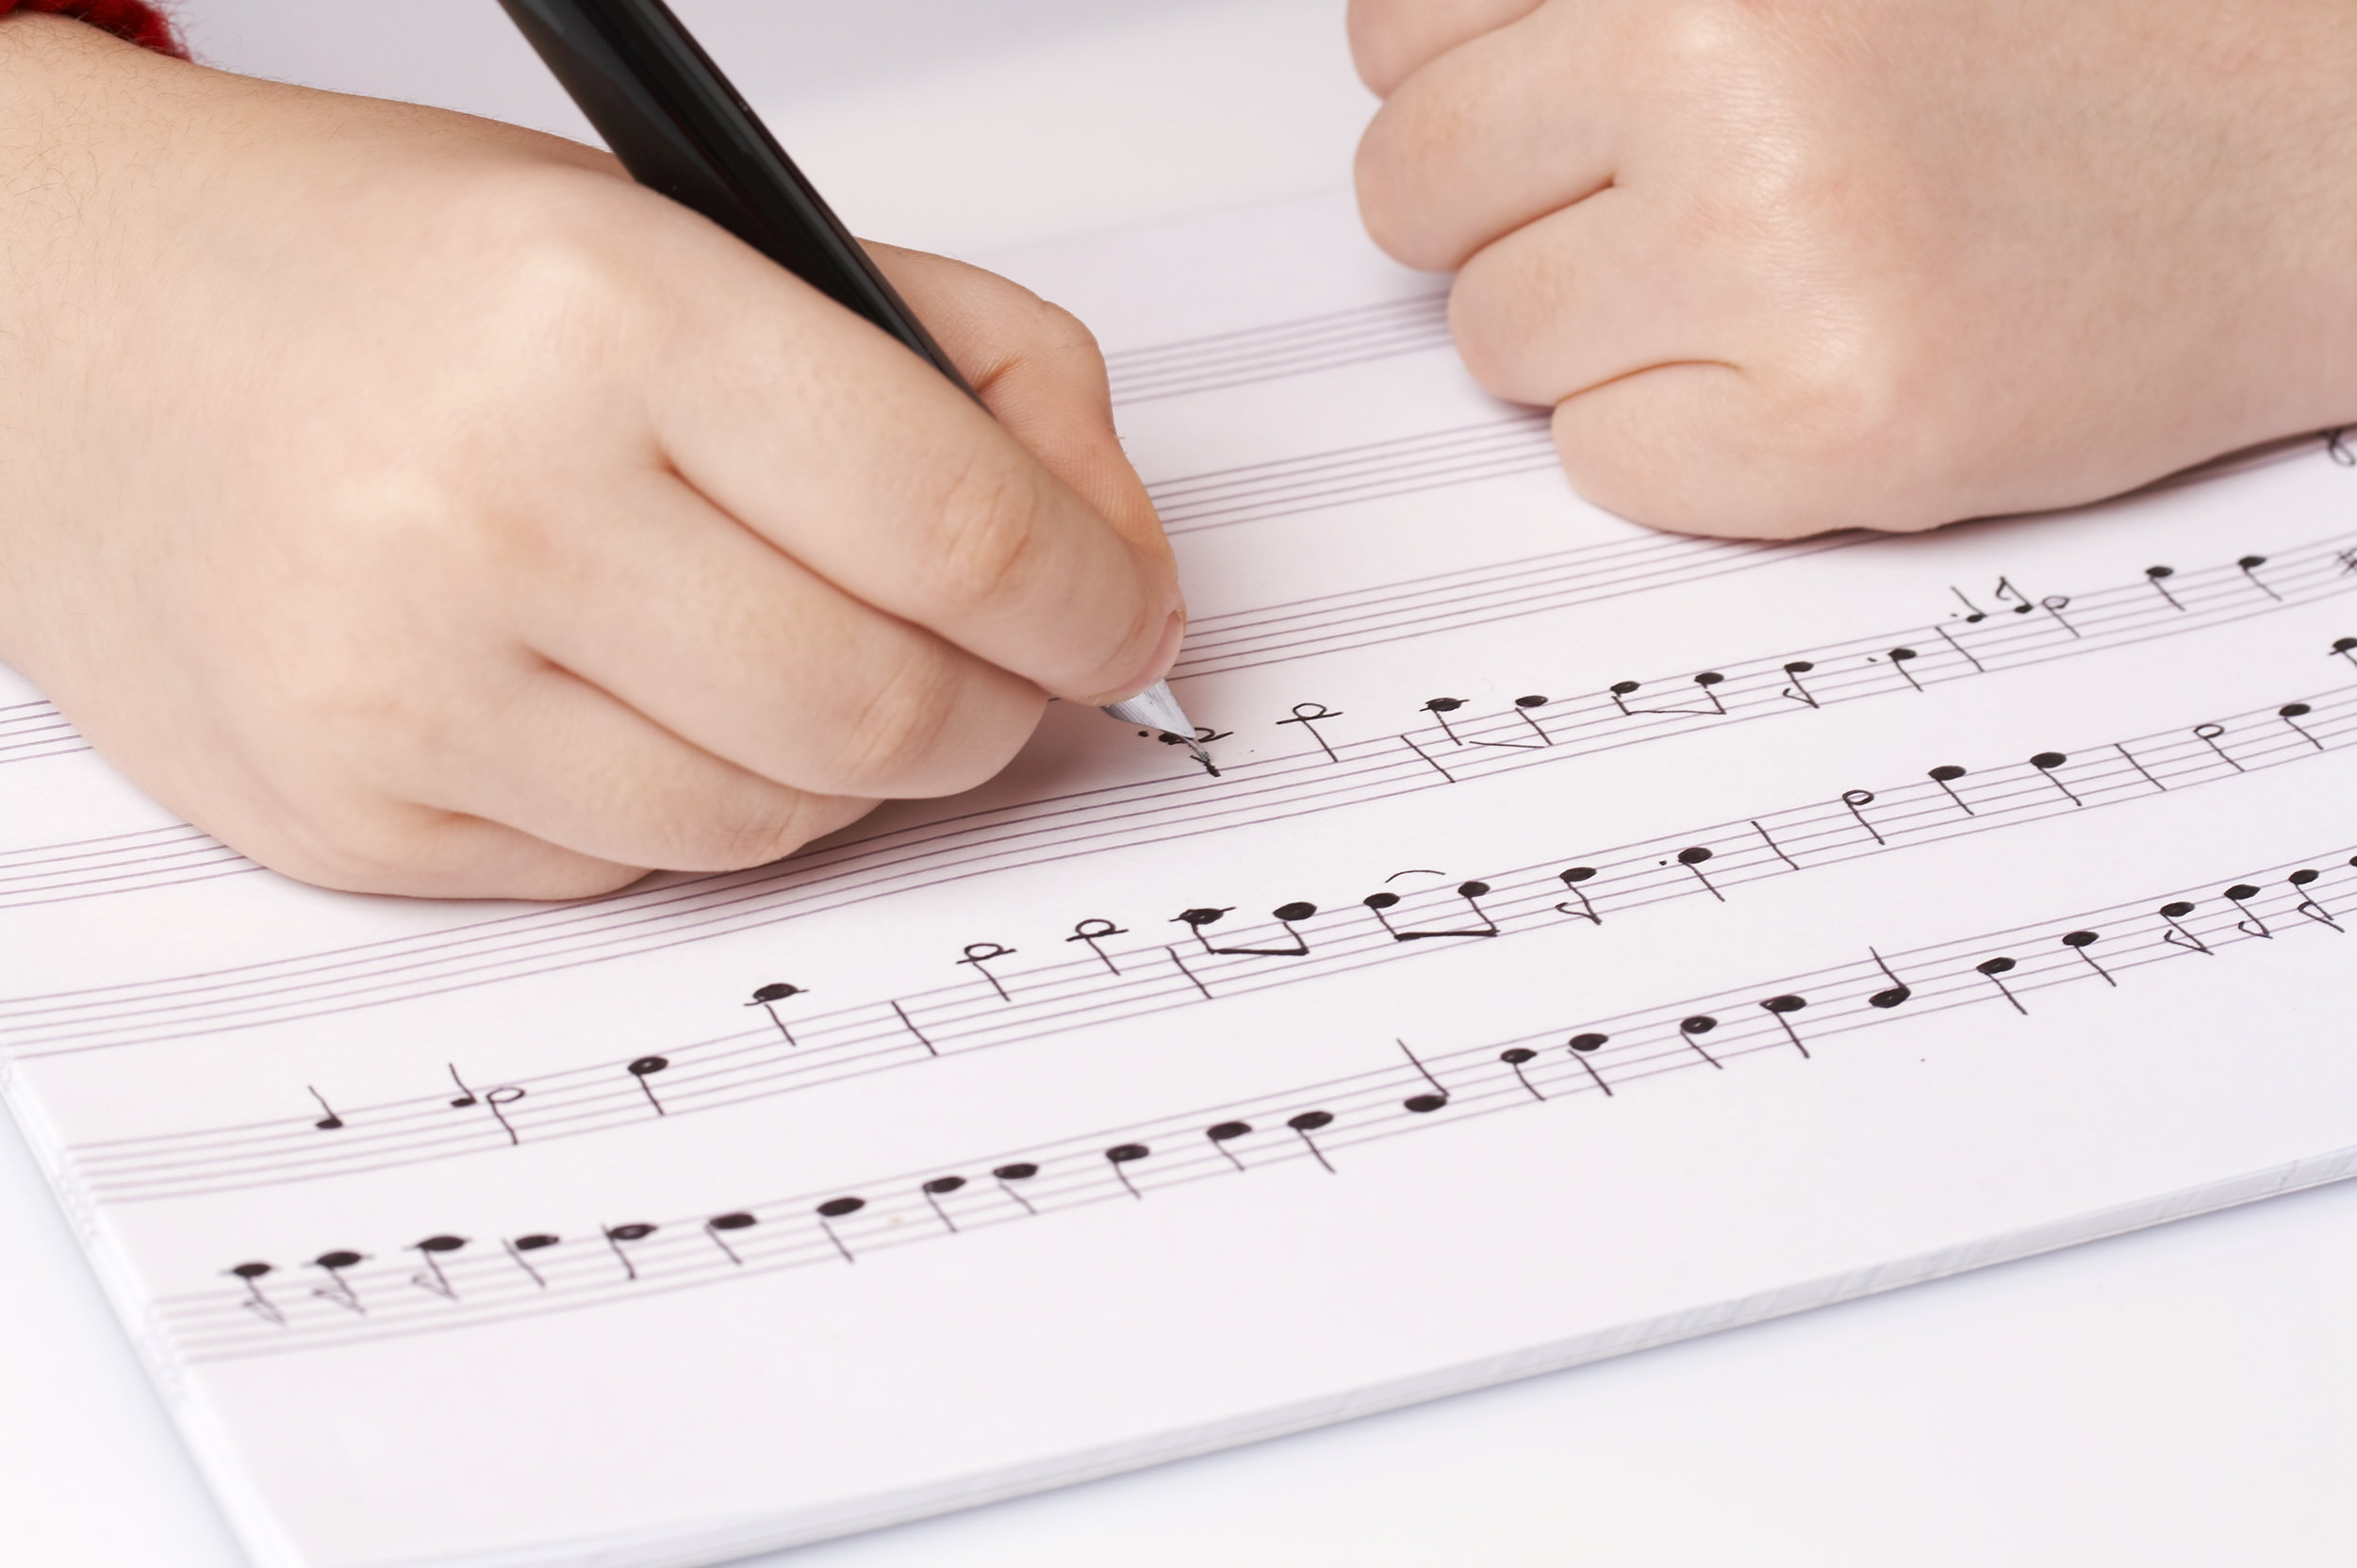 Young hands writing music.jpg